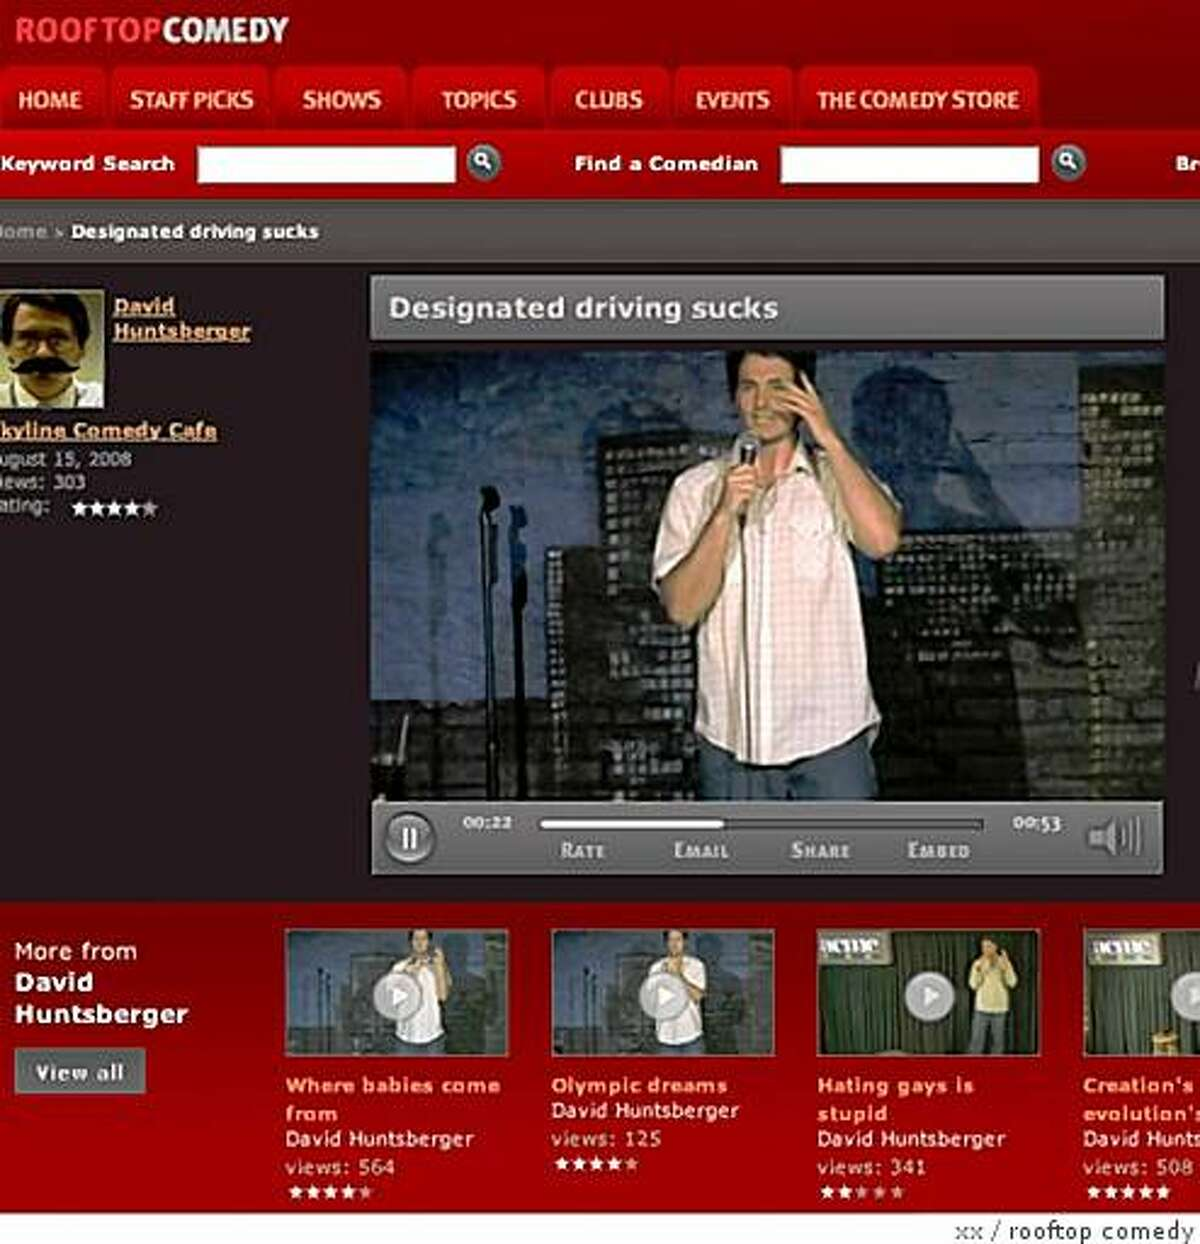 screenshot from the website rooftopcomedy.com, which is on the forefront of using online video